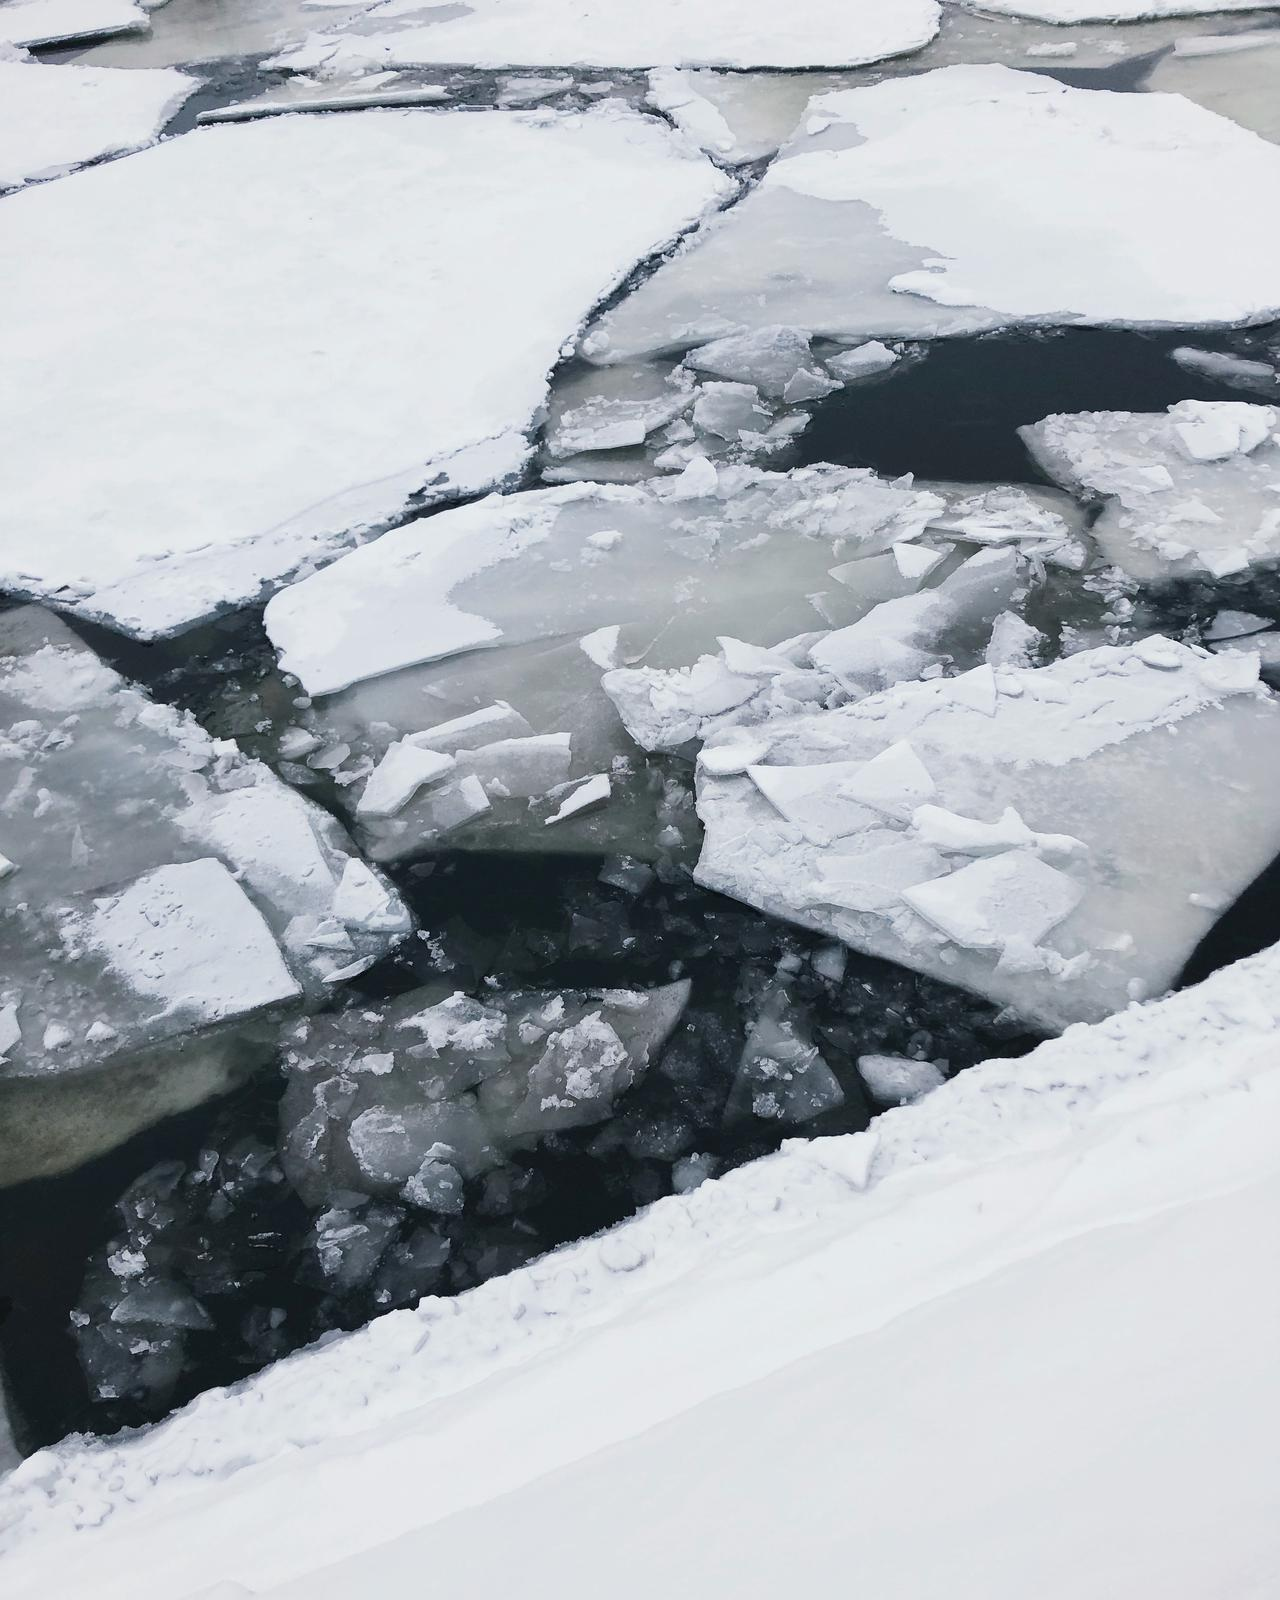 climate-change-cold-environment-1451482.jpg